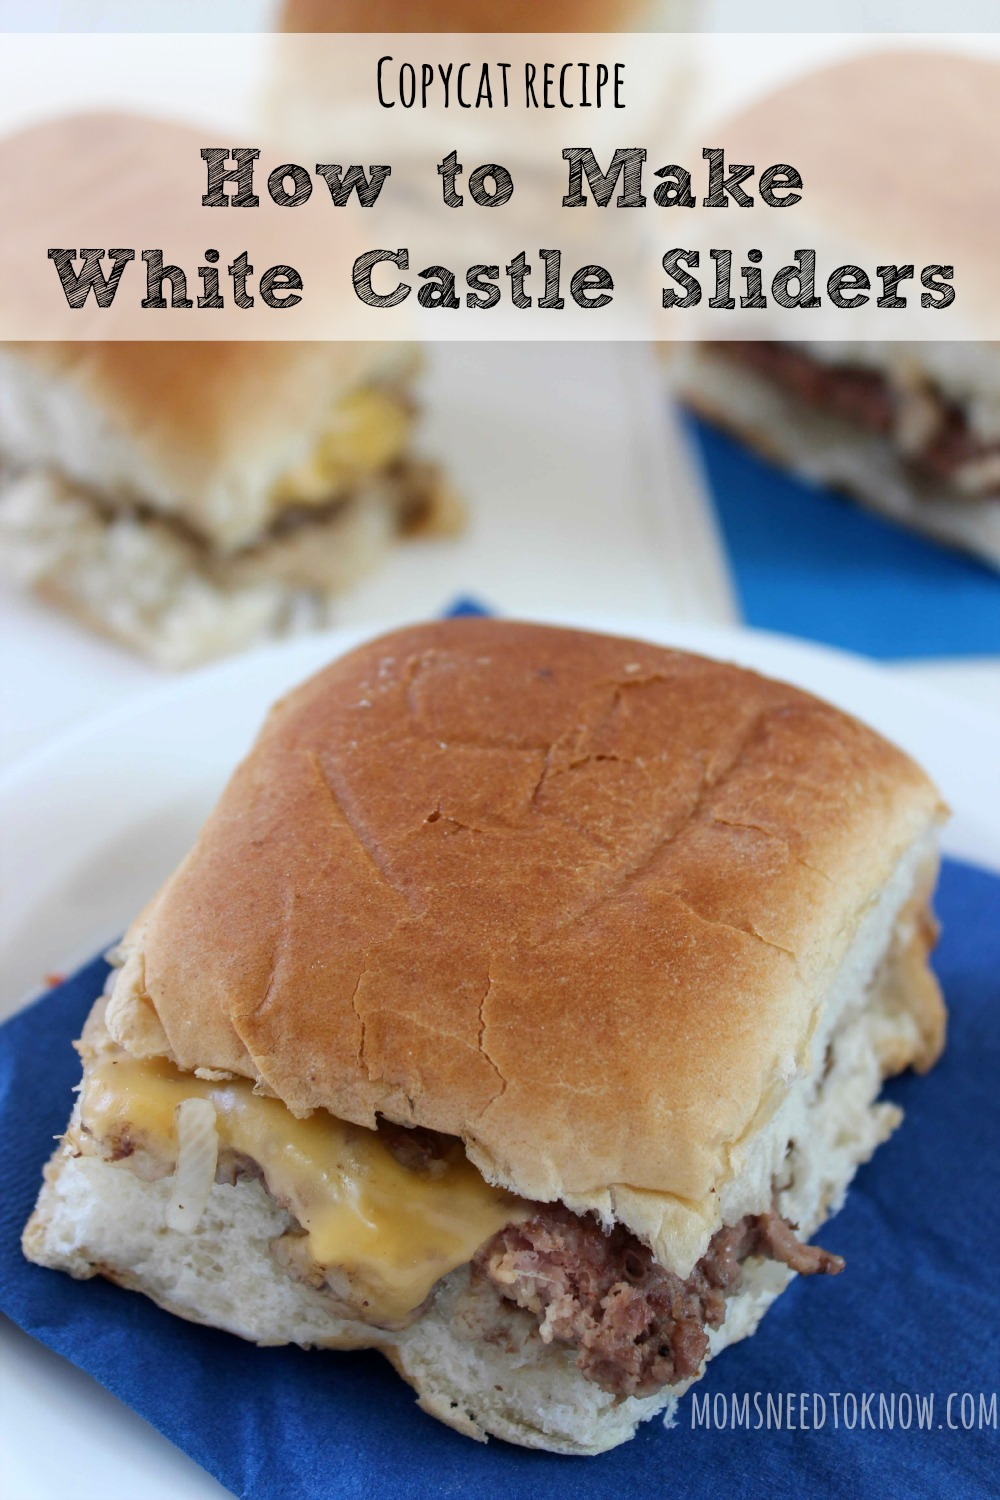 How To Make White Castle Sliders